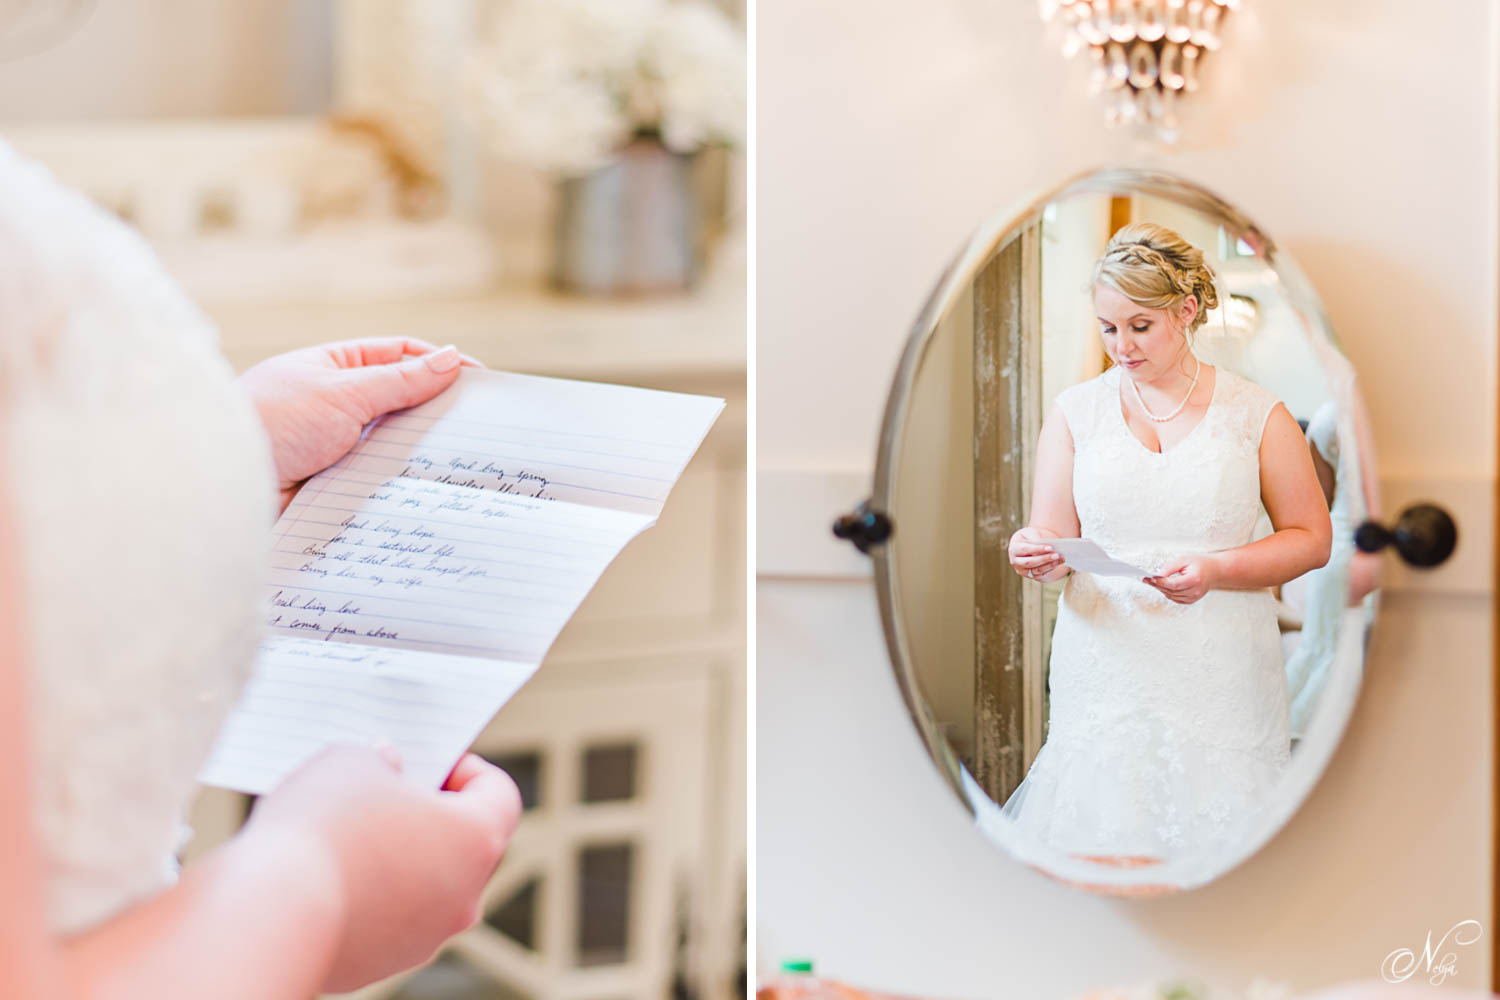 bride reading letter from groom. Bride's face reflecting in the mirror as she reads a letter from the groom